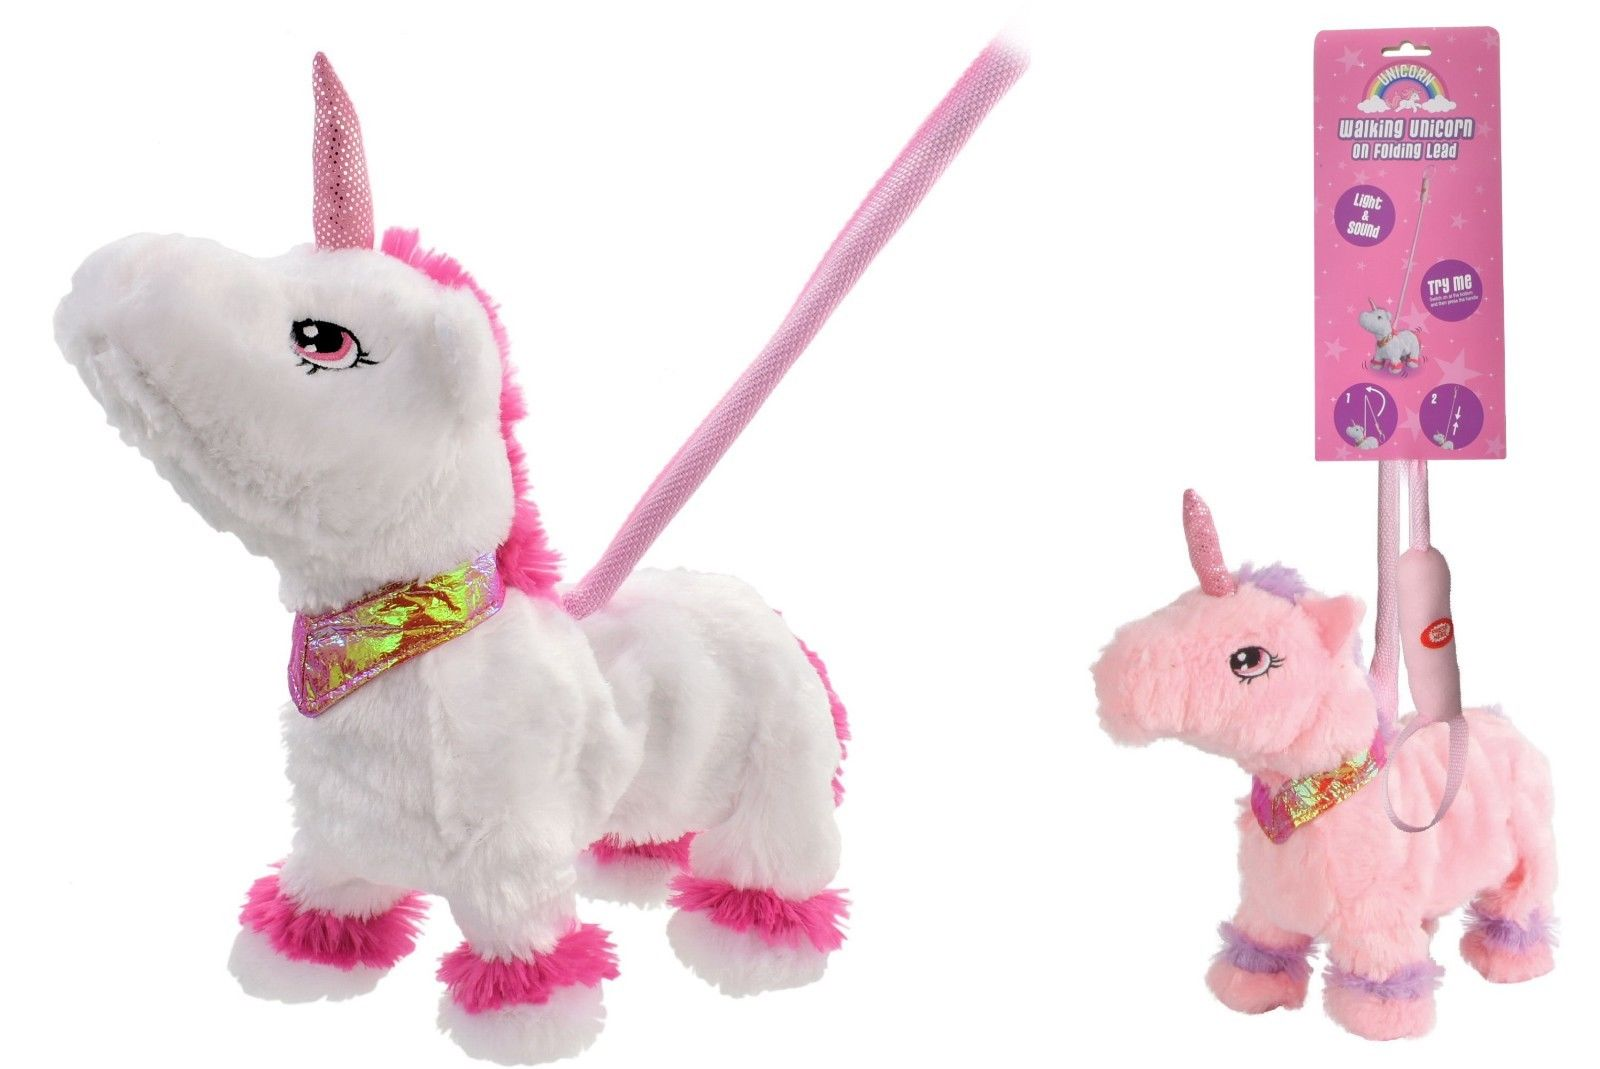 """Walking Unicorn On A Lead """"TRY ME"""" With Sound On Telescopic Lead For Kids"""